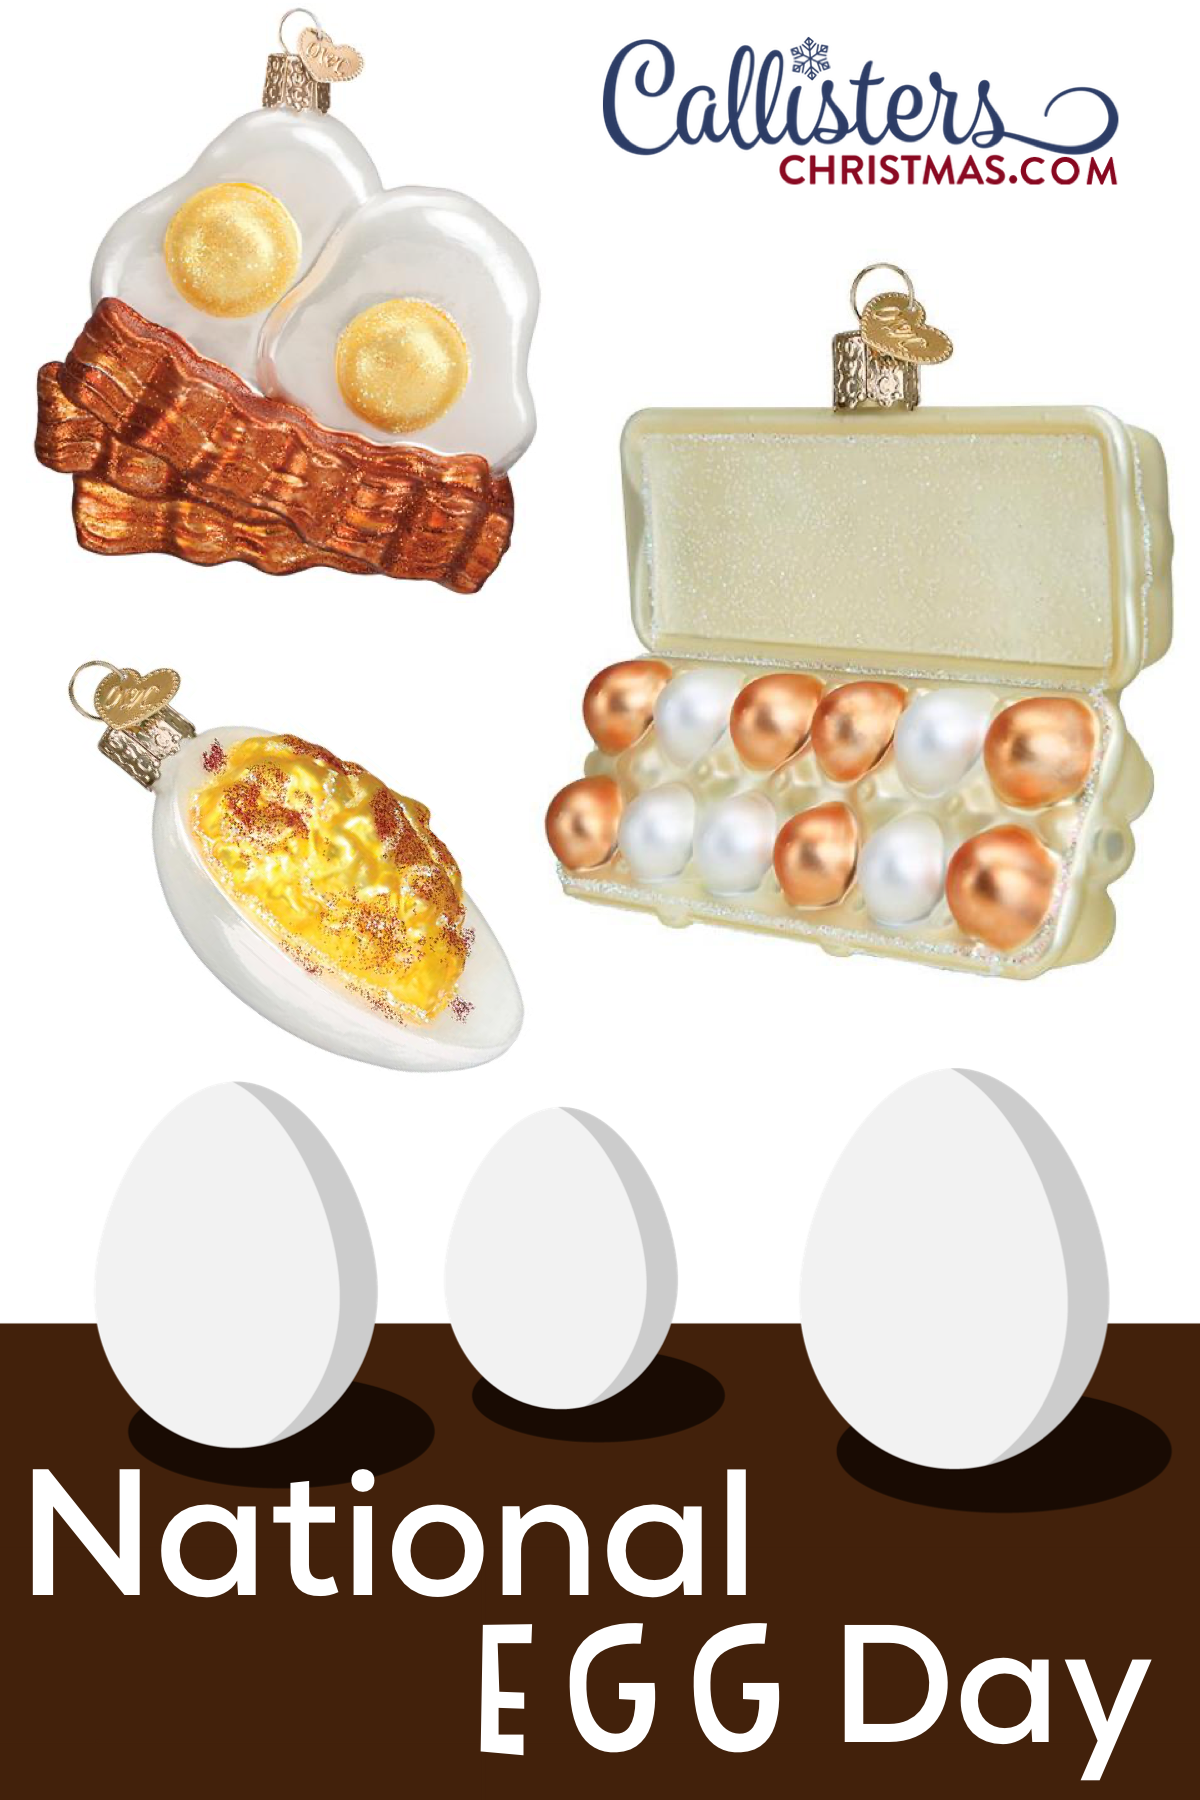 Egg Carton Ornament Food Ornaments Egg Carton Old World Christmas Ornaments